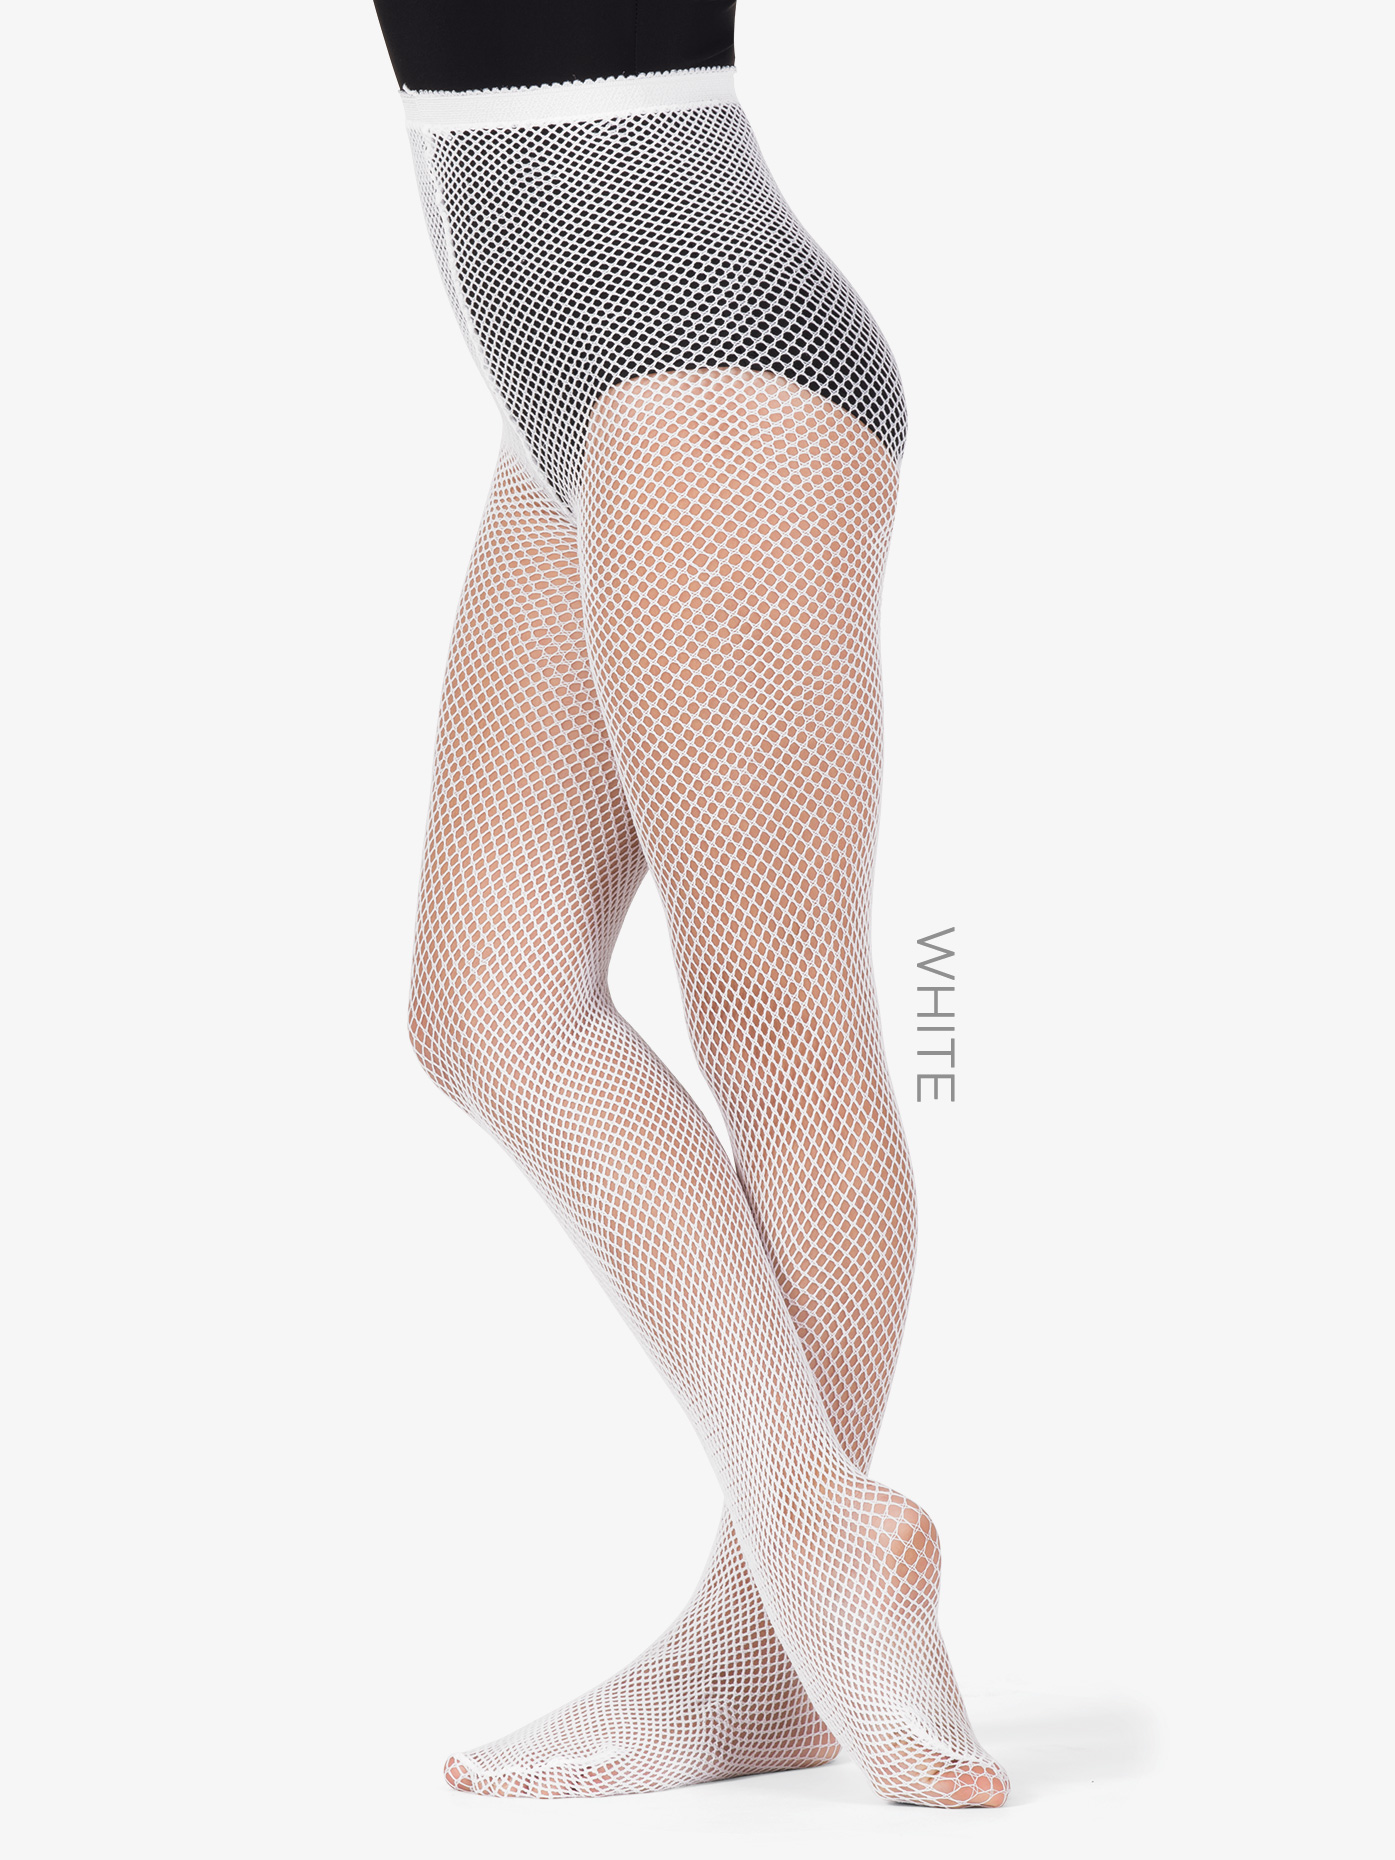 34f5153d57d Girls Footed Fishnet Dance Tights - Style No LA4067. Loading zoom